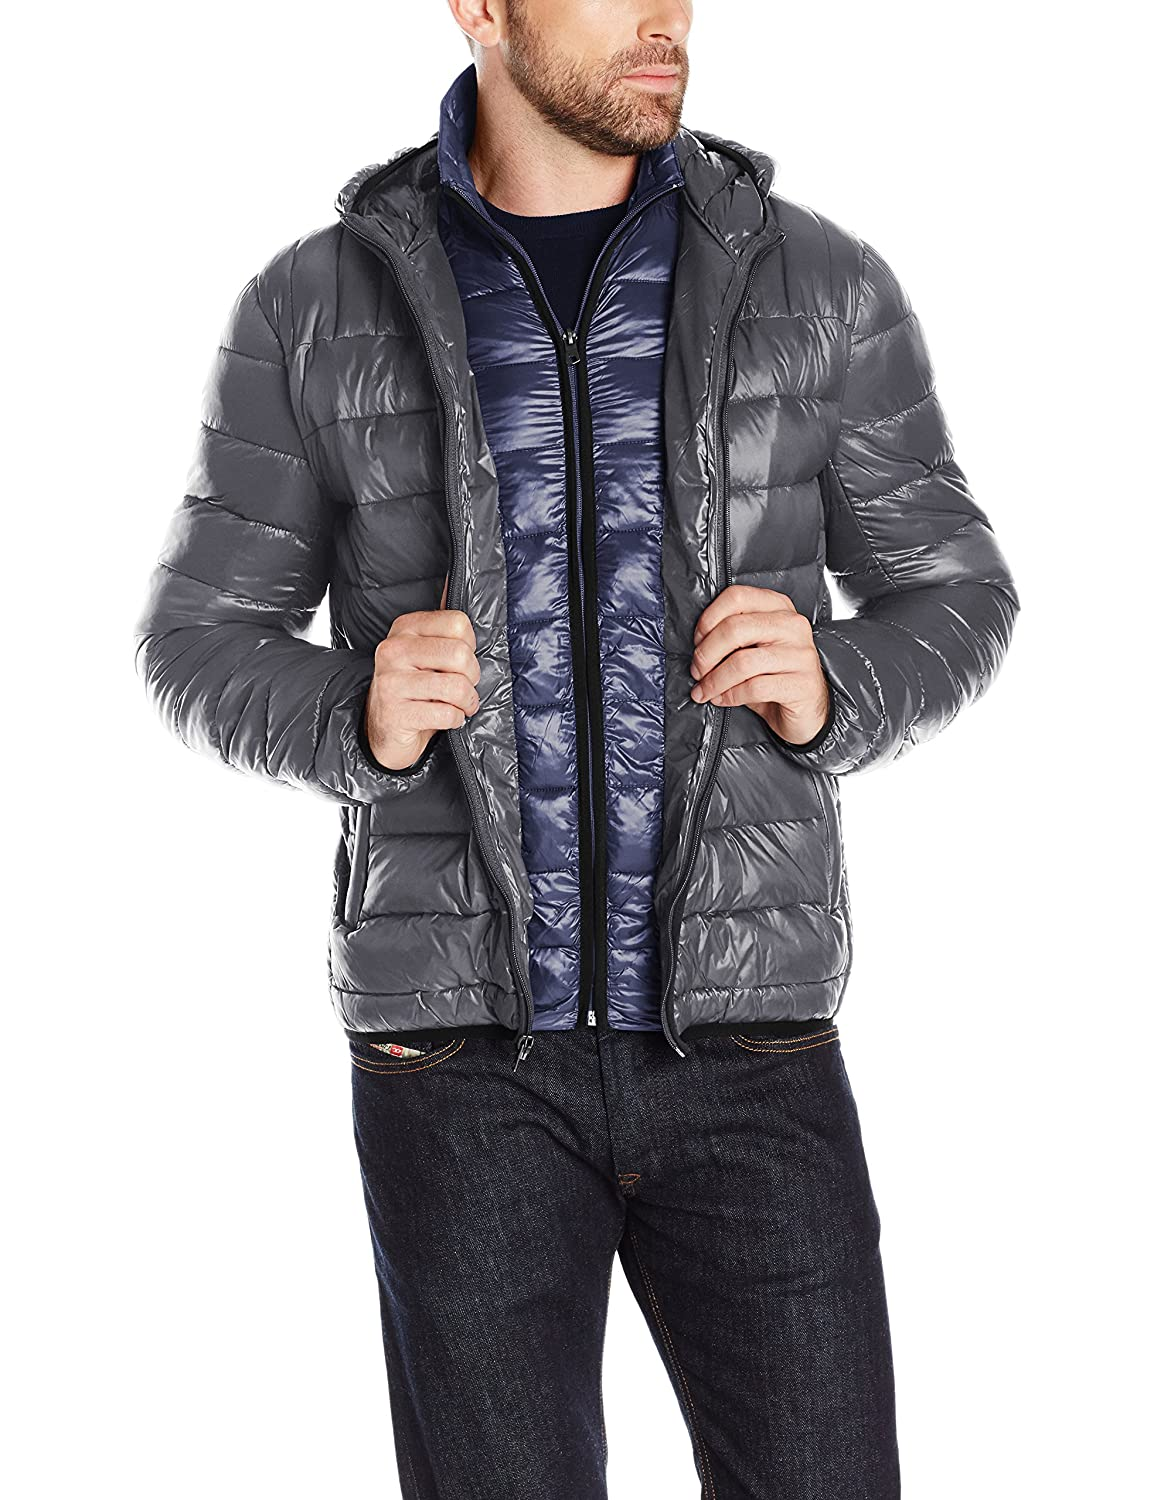 Tommy Hilfiger Mens Insulated Packable Jacket with Contrast Bib and Hood